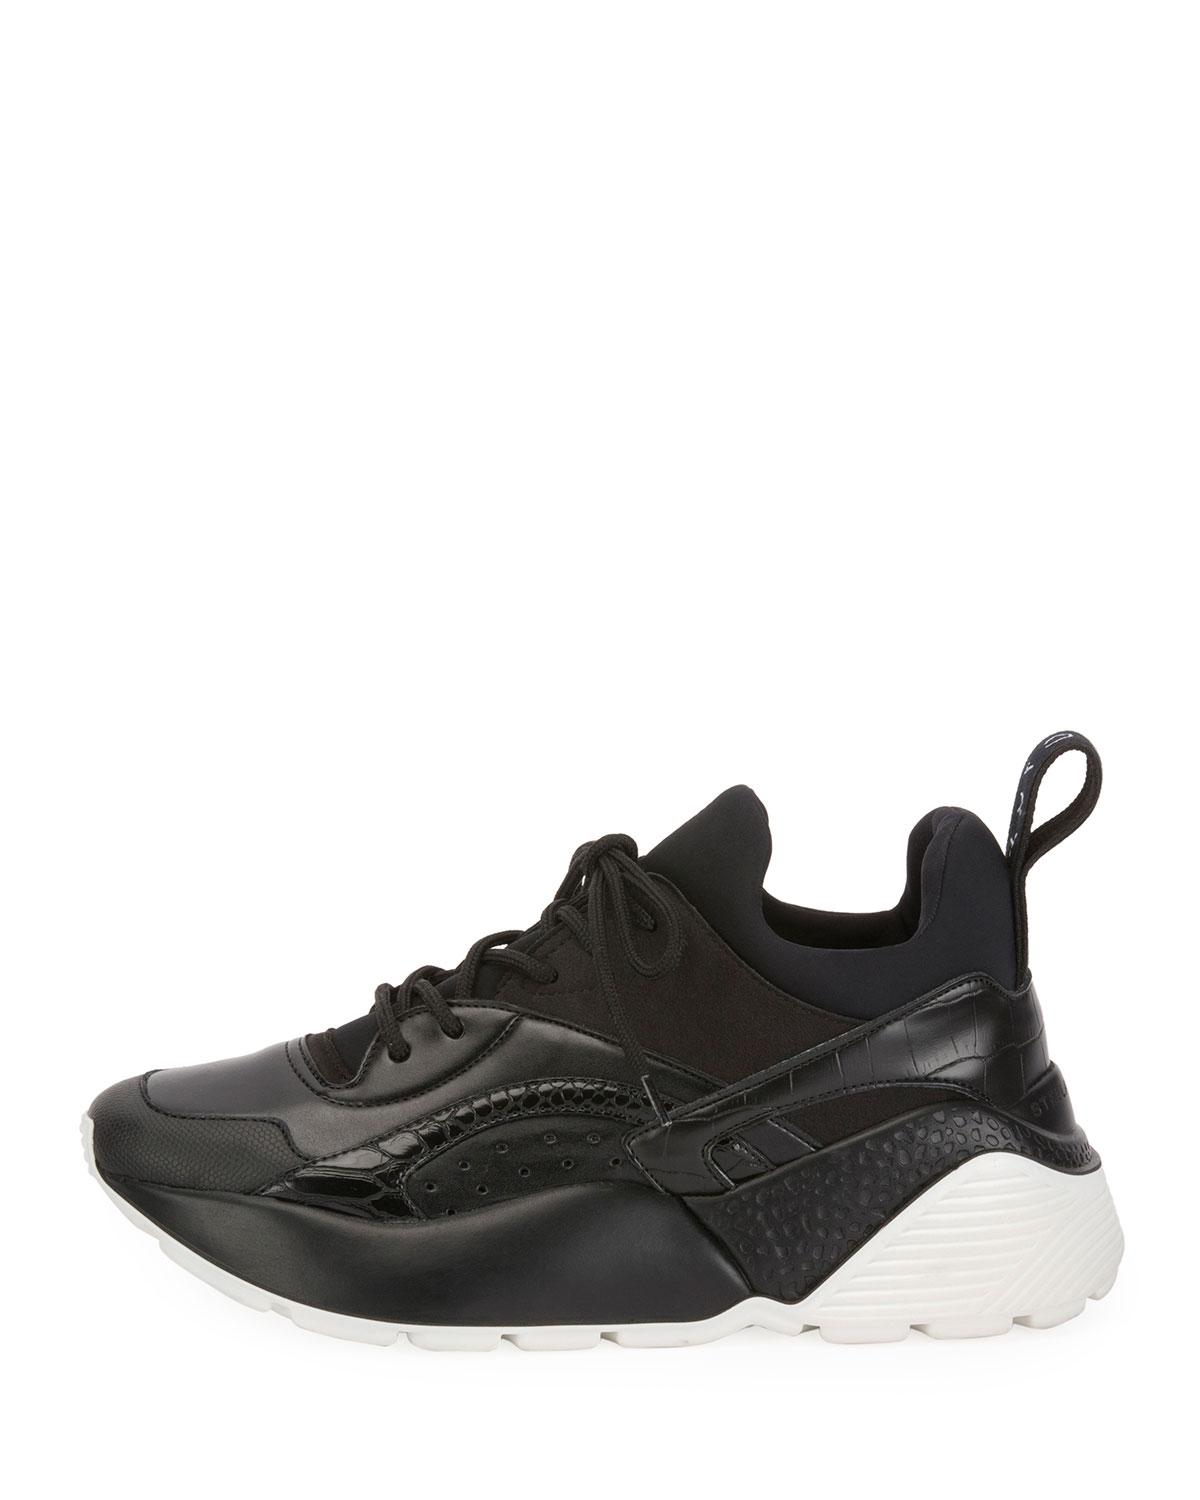 3d836e3b4 Lyst - Stella McCartney Textured Faux-leather Trainer Sneakers in Black